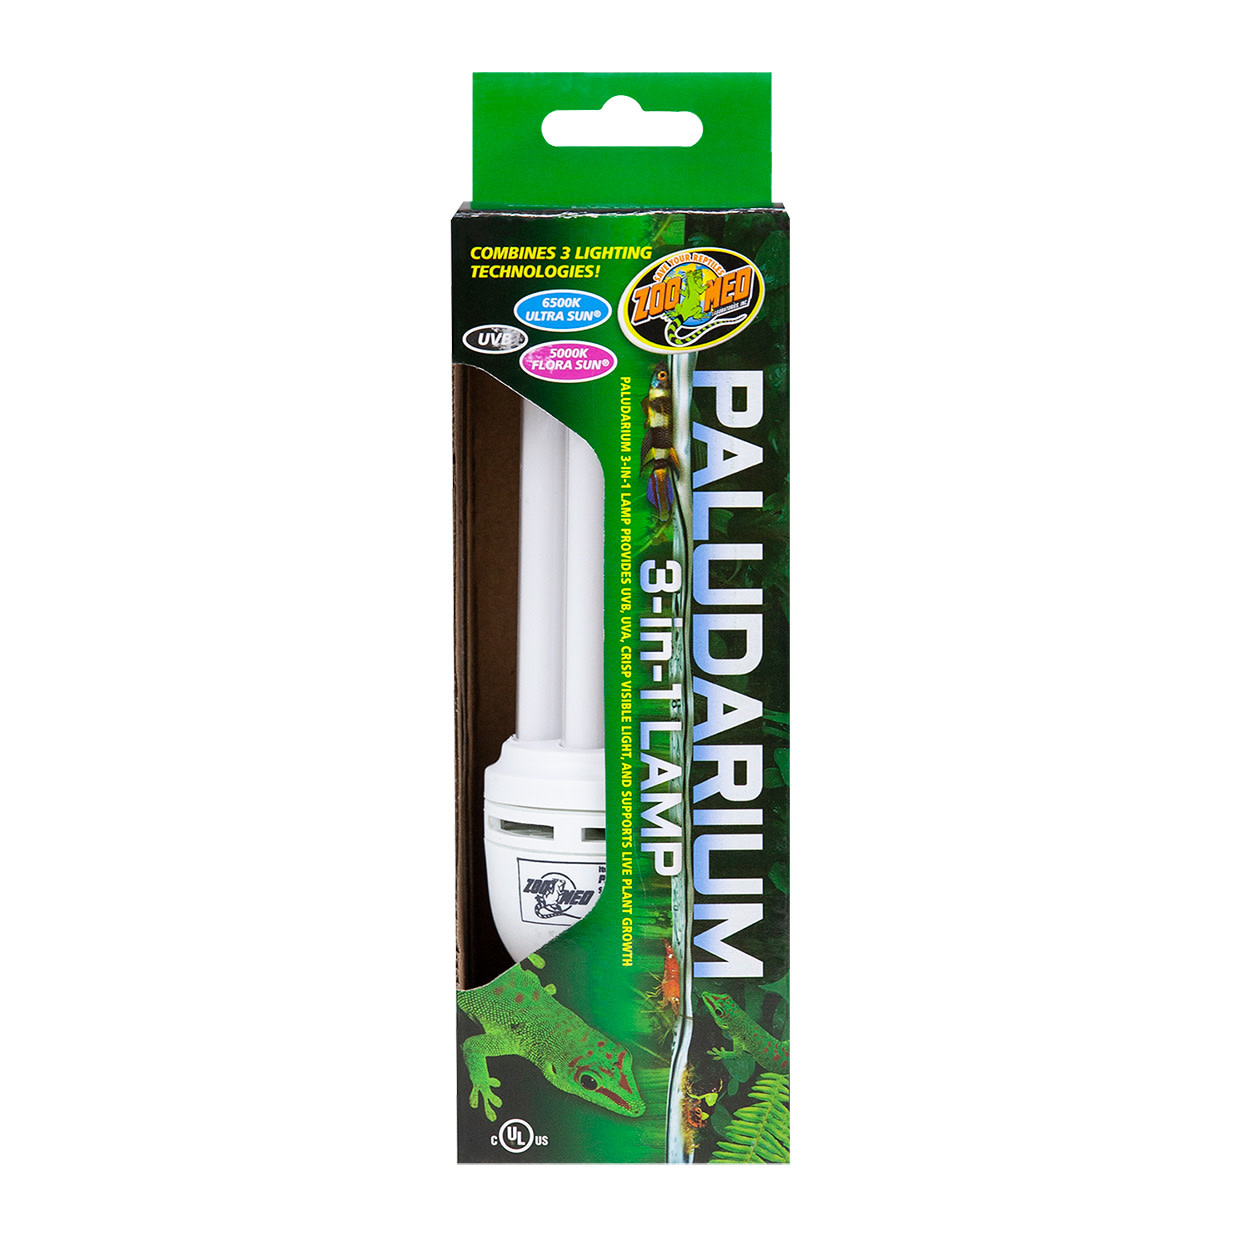 Zoomed Paludarium 3-in-1 Lamp - 26 W